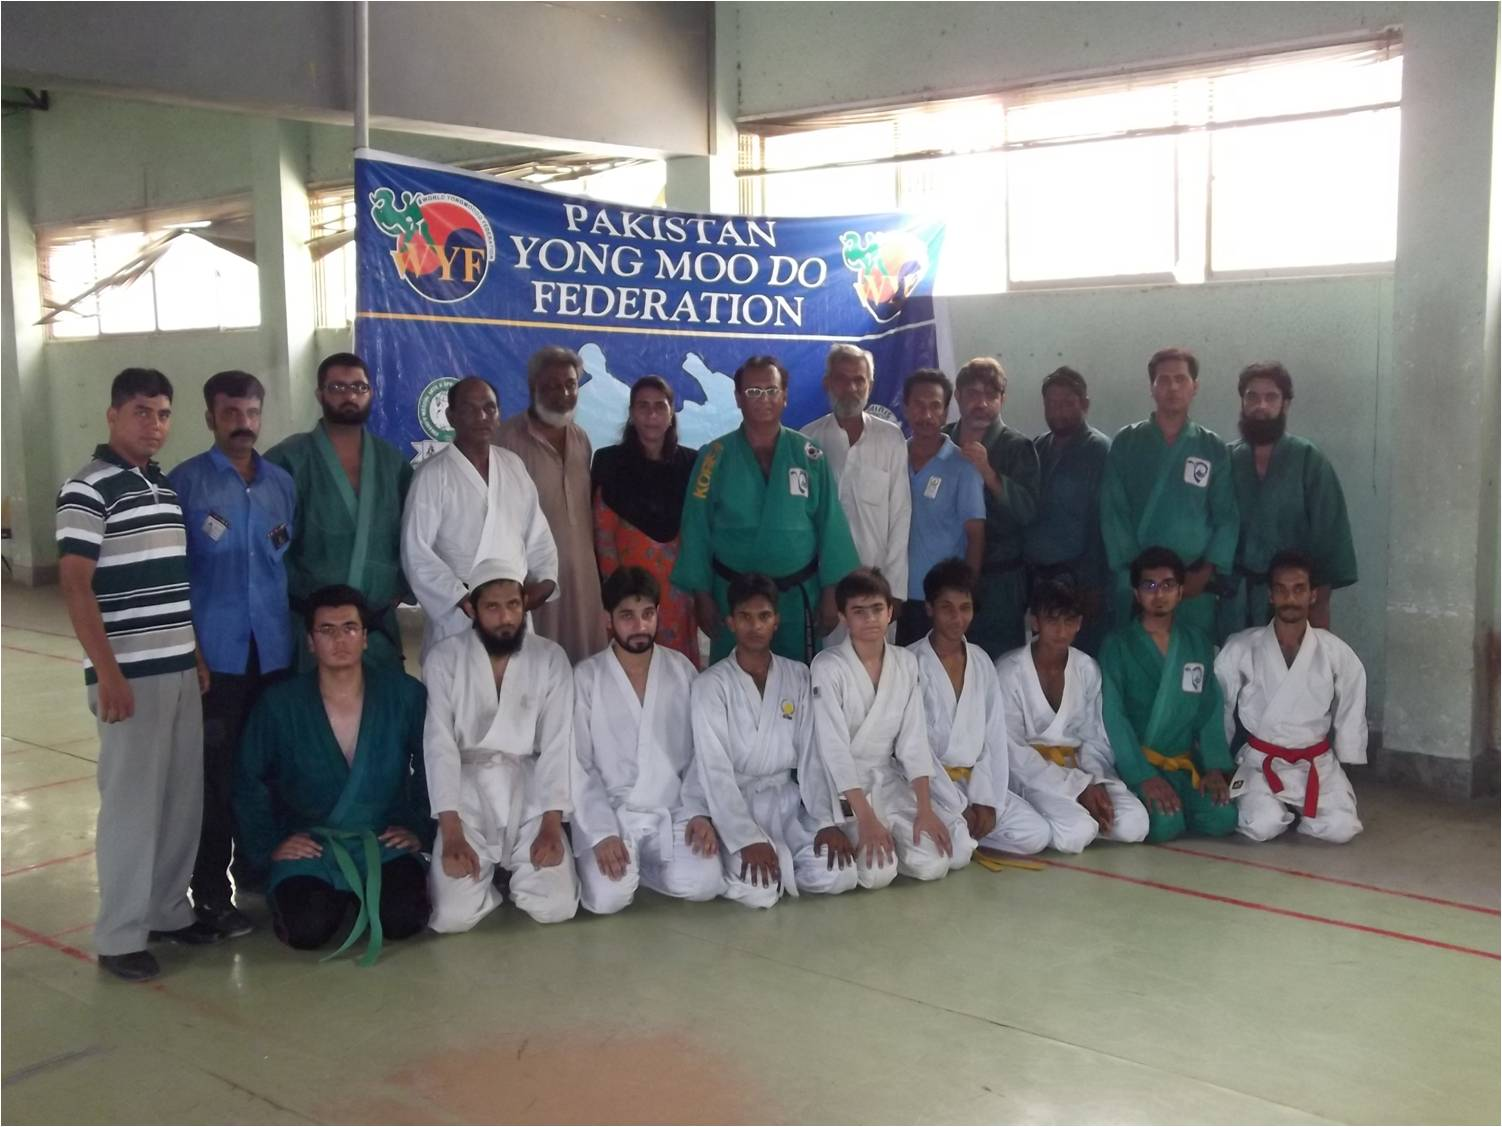 Pakistan Yong Moo Do Federation Seminar